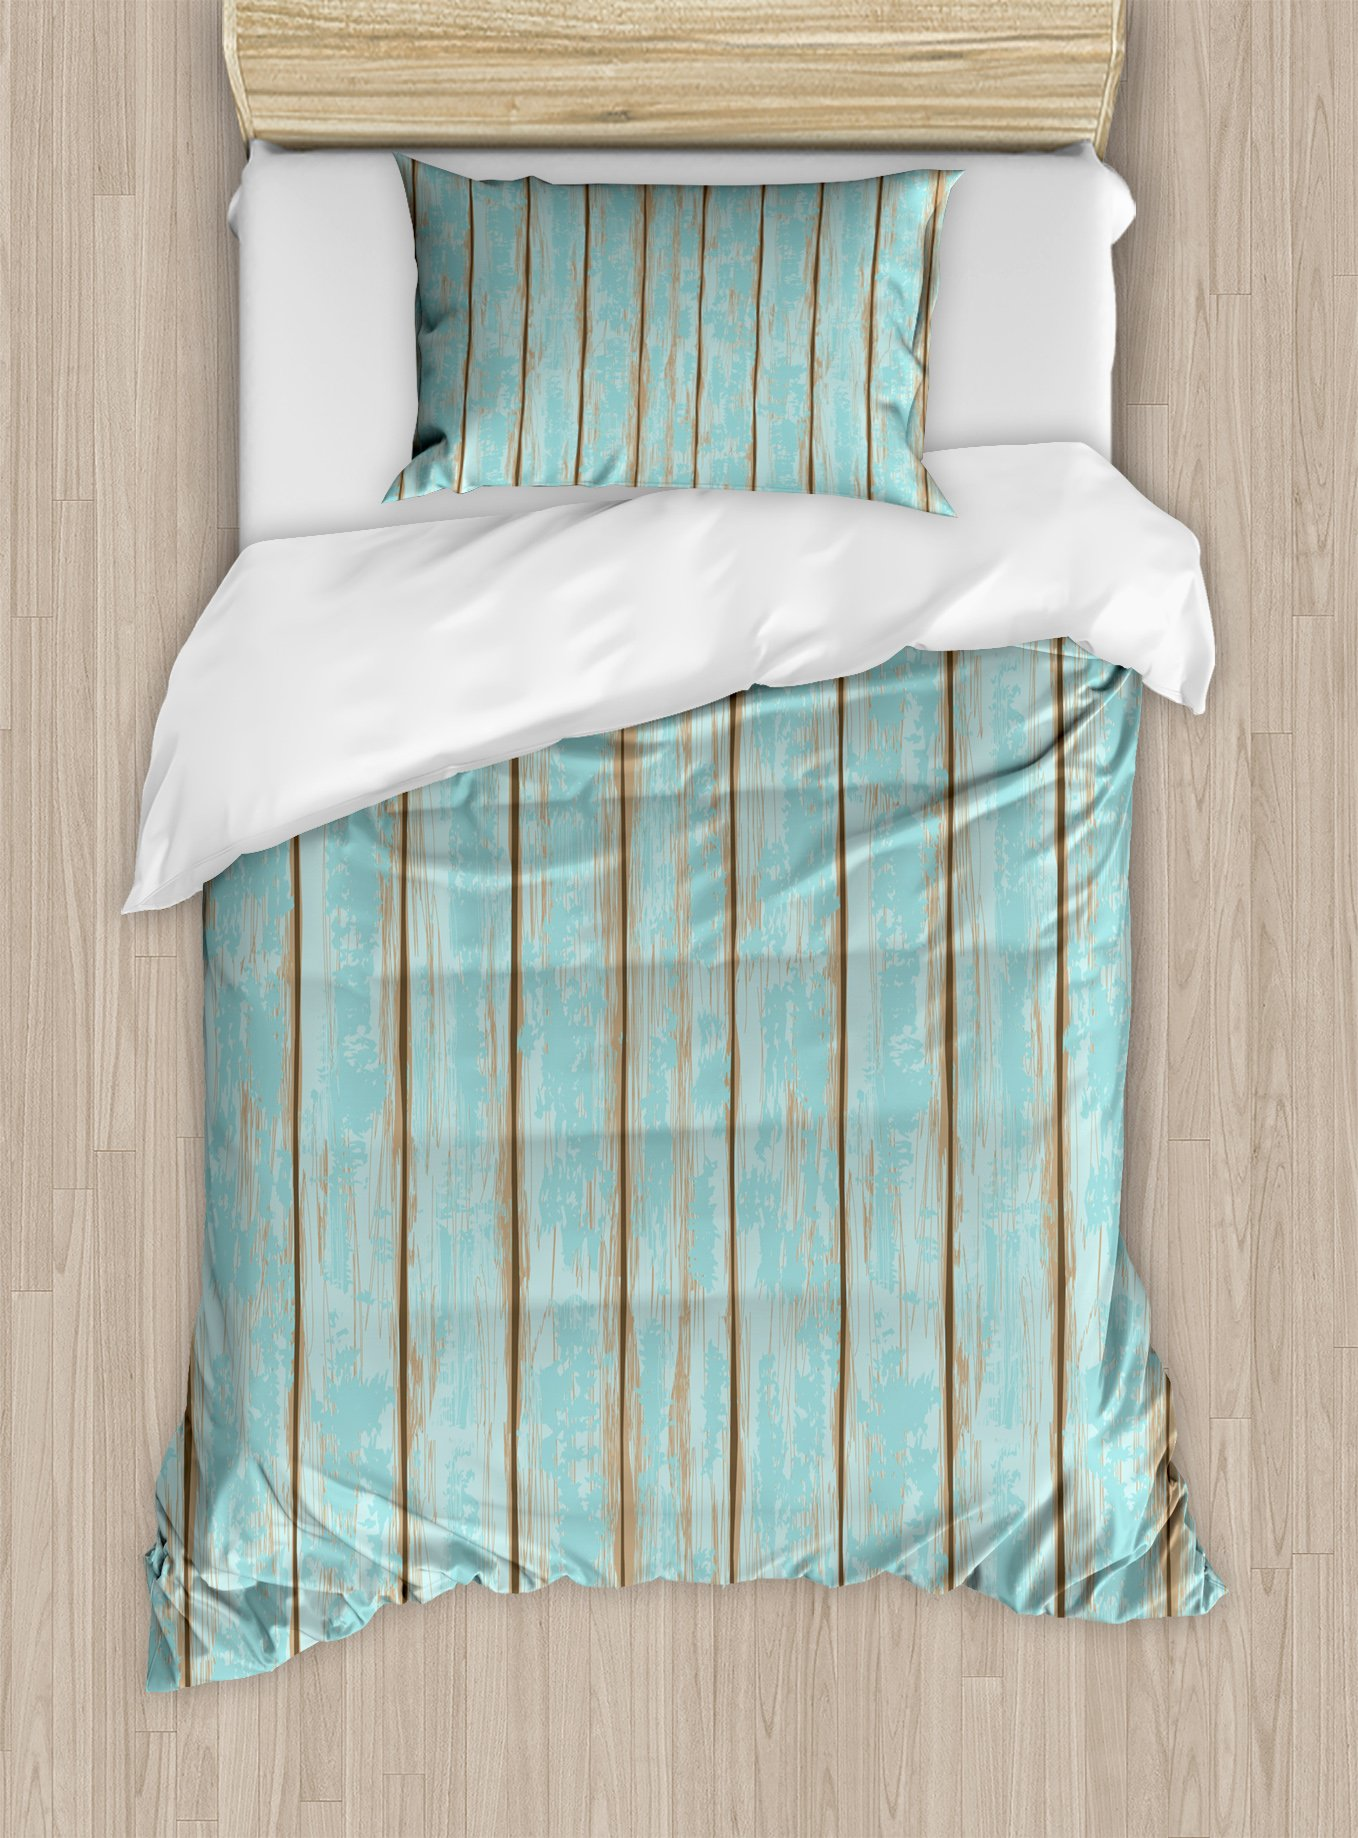 Lunarable Wood Print Twin Size Duvet Cover Set by, Old Fashioned Weathered Rustic Planks Summer Cottage Beach Coastal Theme, Decorative 2 Piece Bedding Set with 1 Pillow Sham, Pale Blue Tan